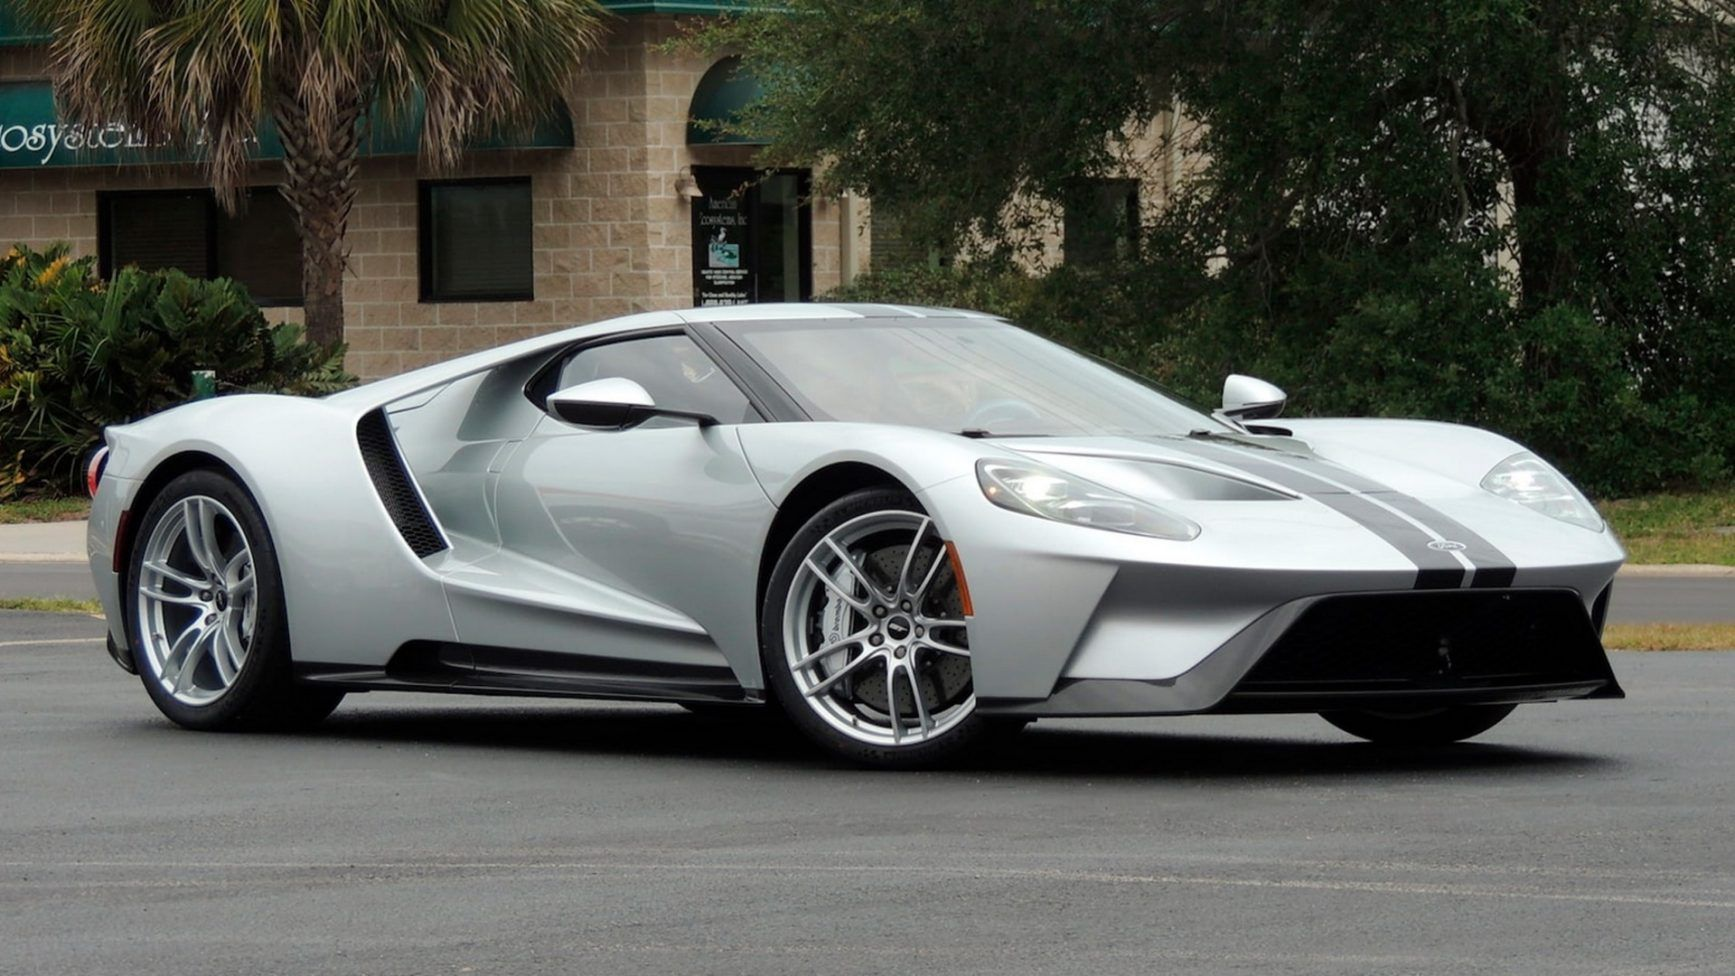 2020 Ford Gts Review Engine Cost Release Date Design Photos